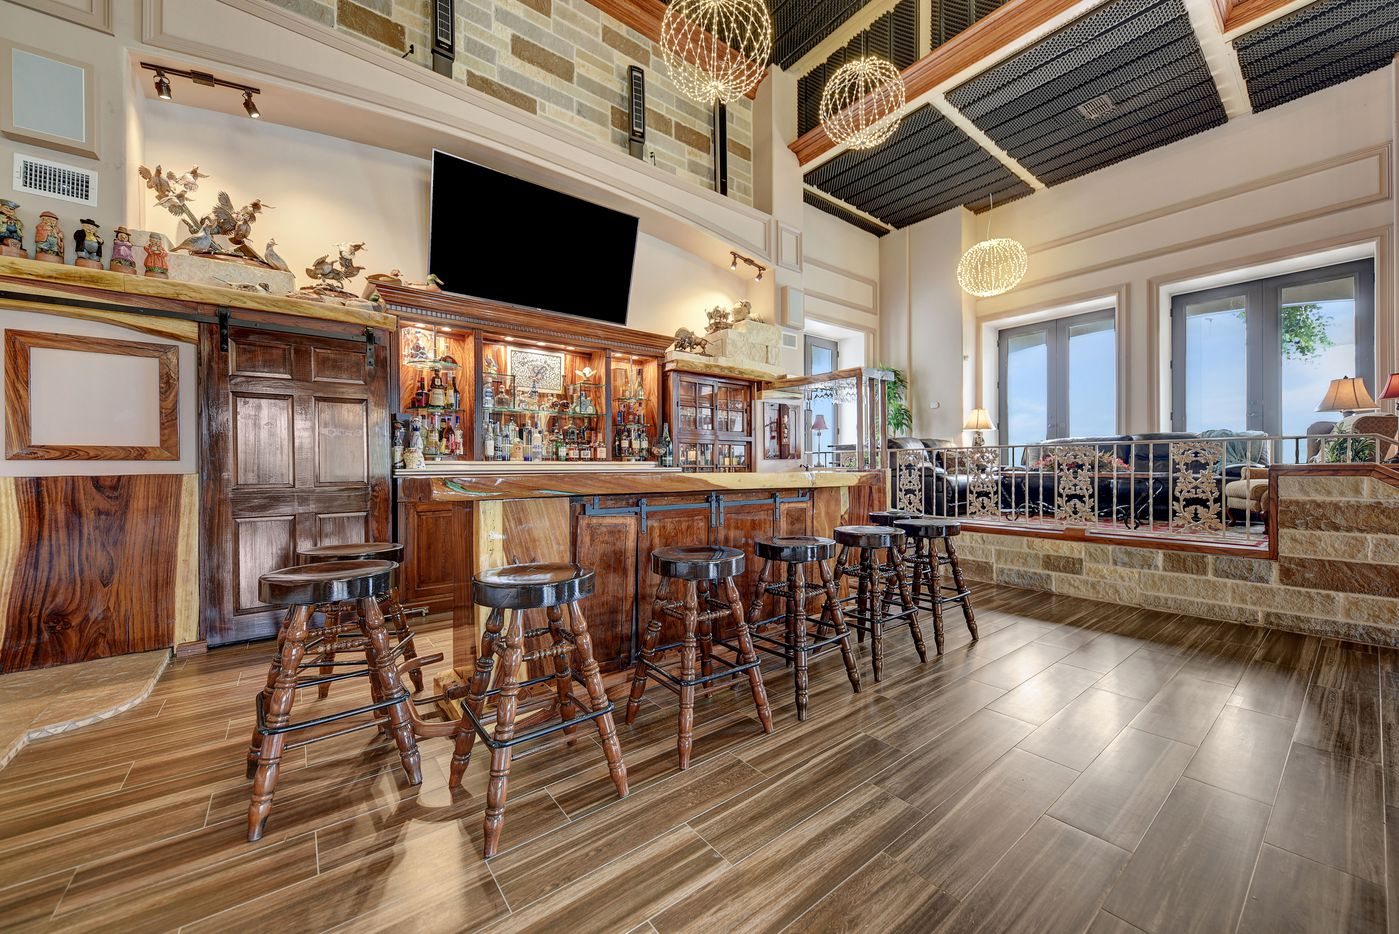 Take a look inside this 44,602-square-foot home at 9950 Palestine Road in Brenham. The home sits on more than 230 acres.